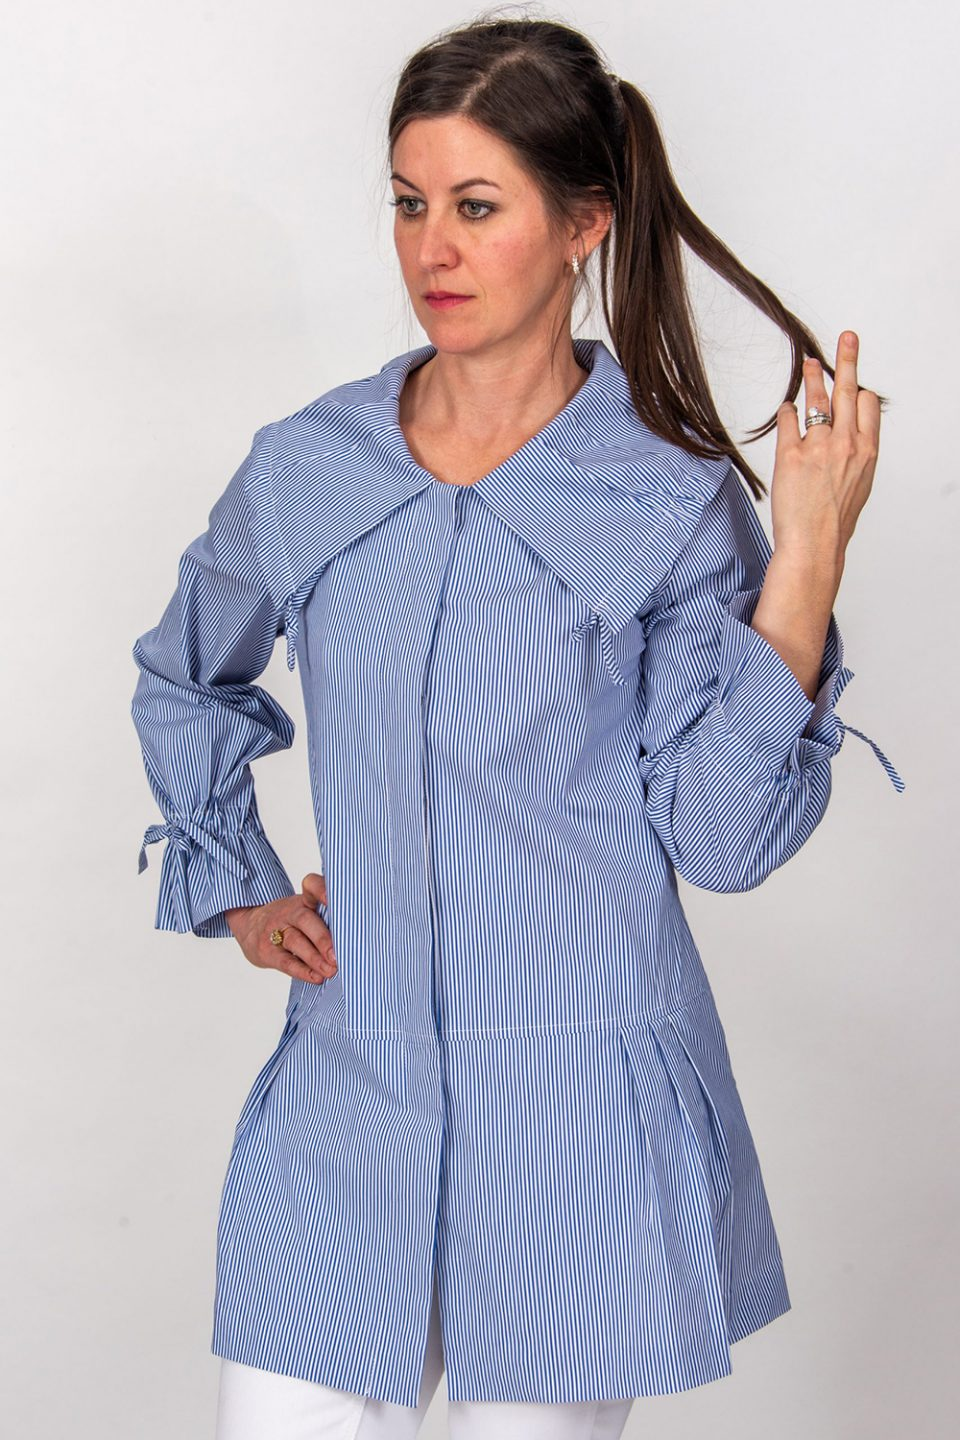 Ginny Pleated Collar Tunic Top Blue Stripe Front- Diane Bailey Designs